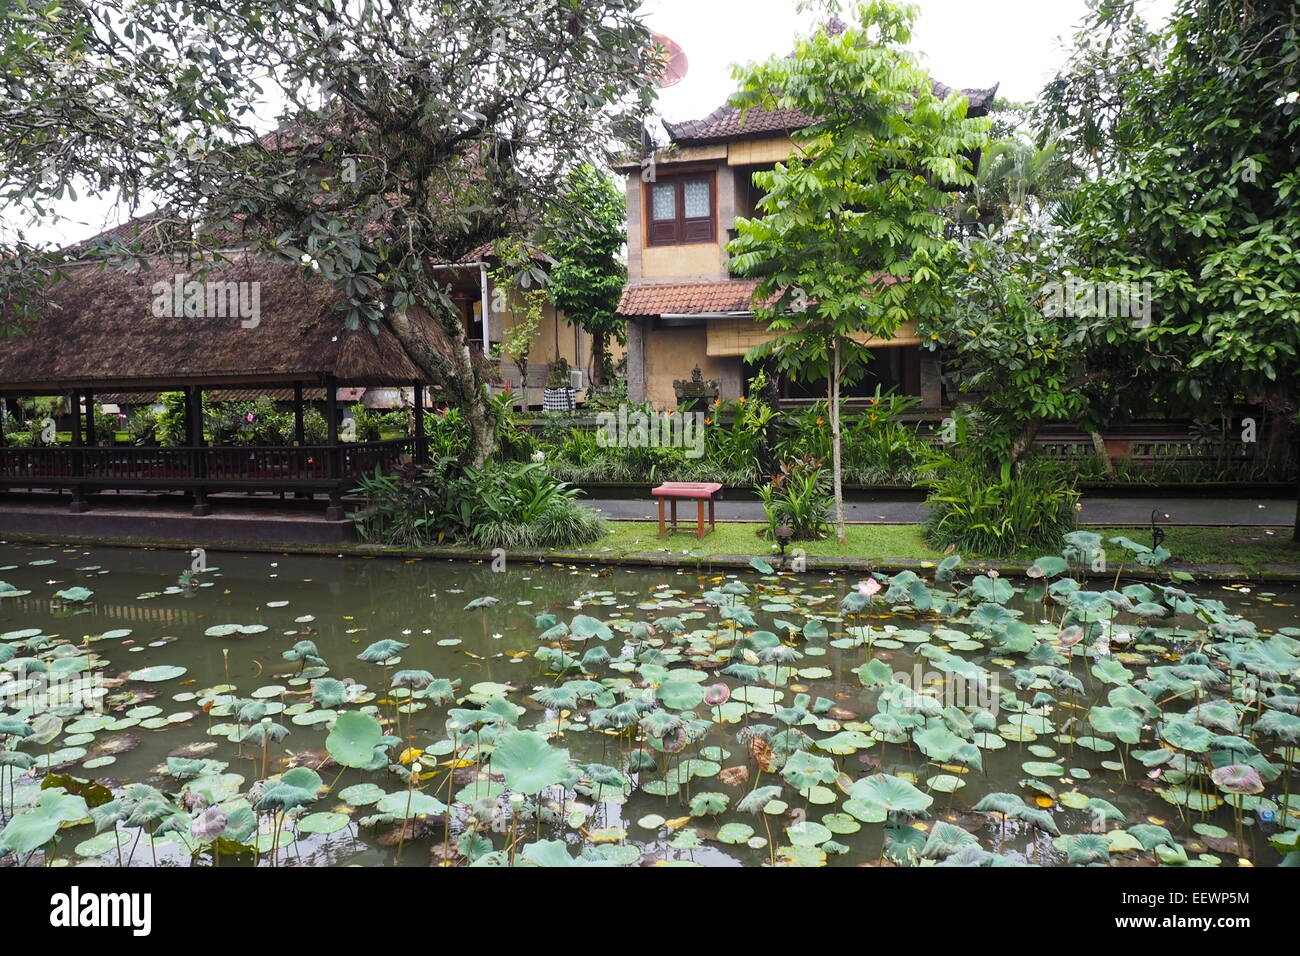 Lotus pond situated in front of the Pura Taman Saraswati, Ubud, Bali. - Stock Image